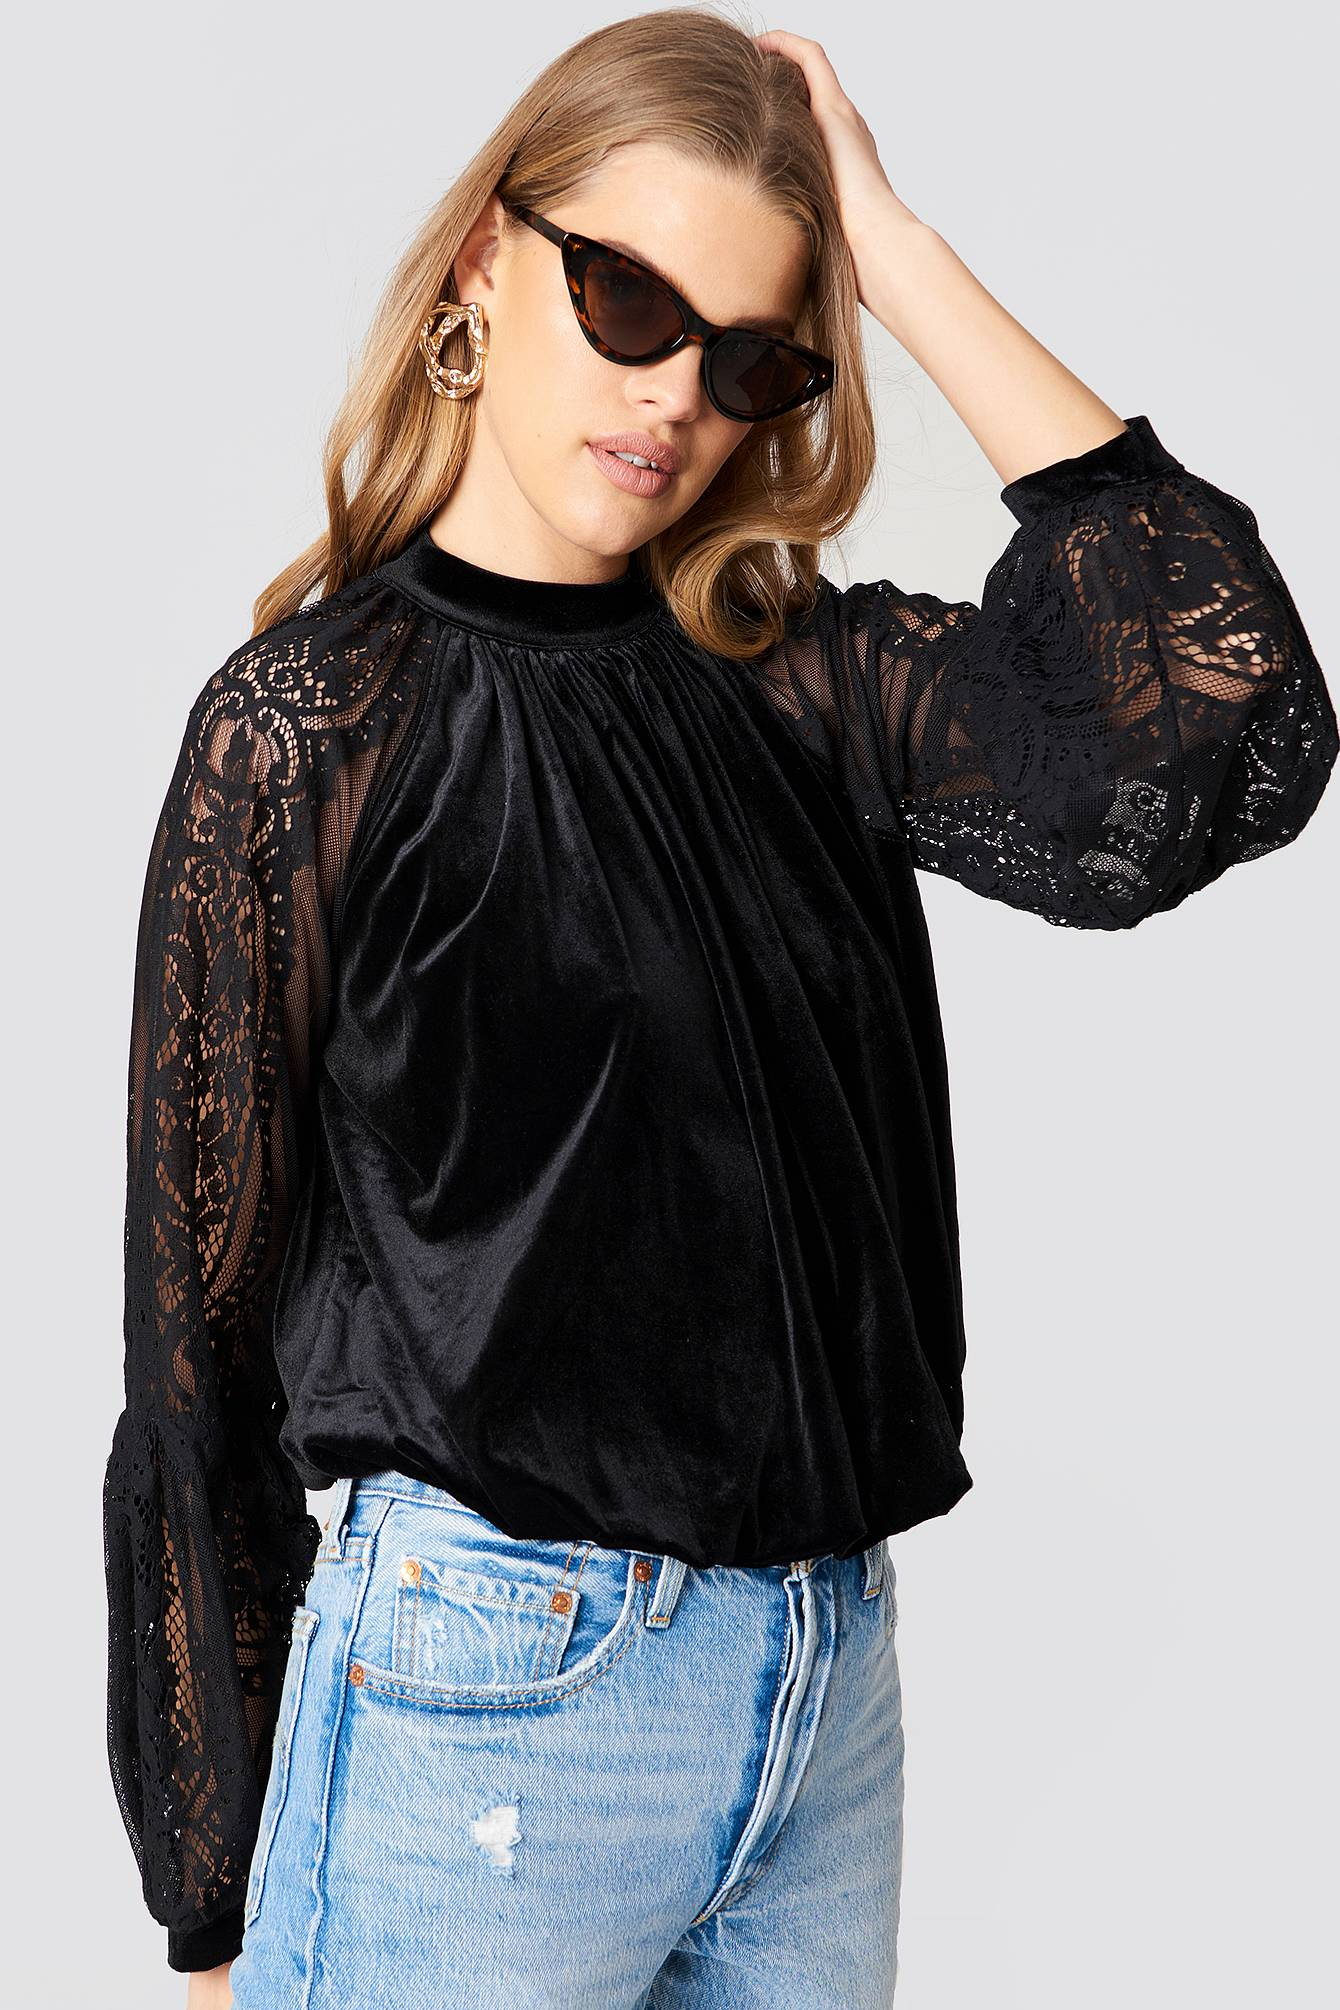 Free People Dream Team Top - Black